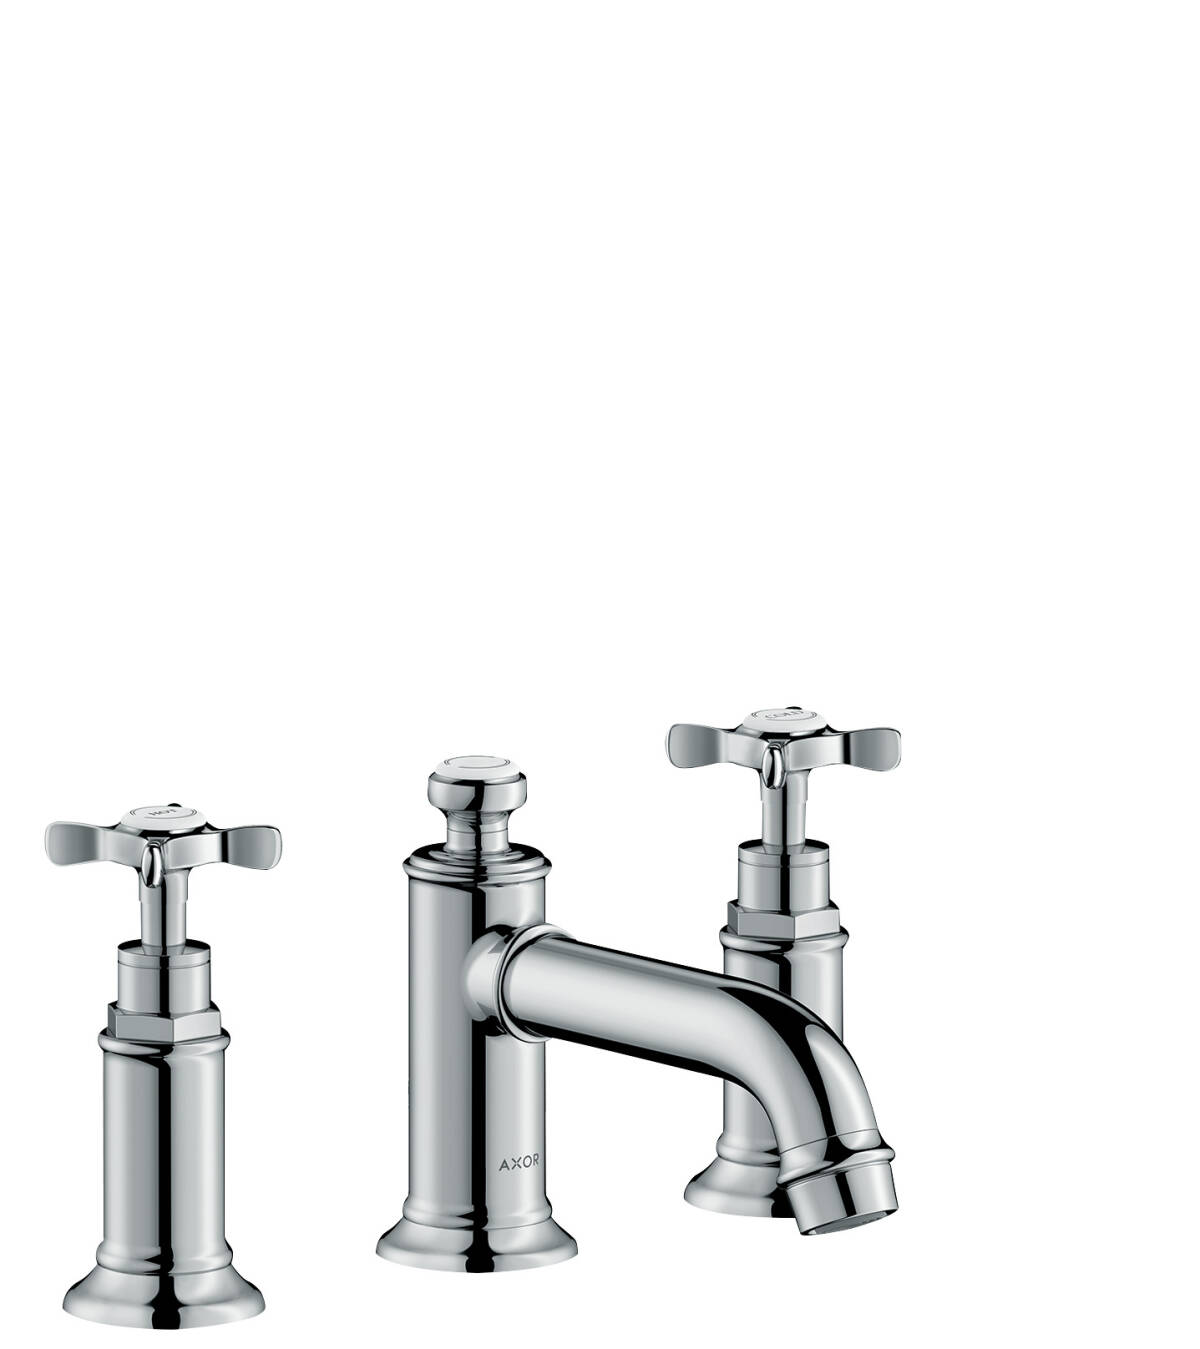 3-hole basin mixer 30 with cross handles and pop-up waste set, Chrome, 16536000